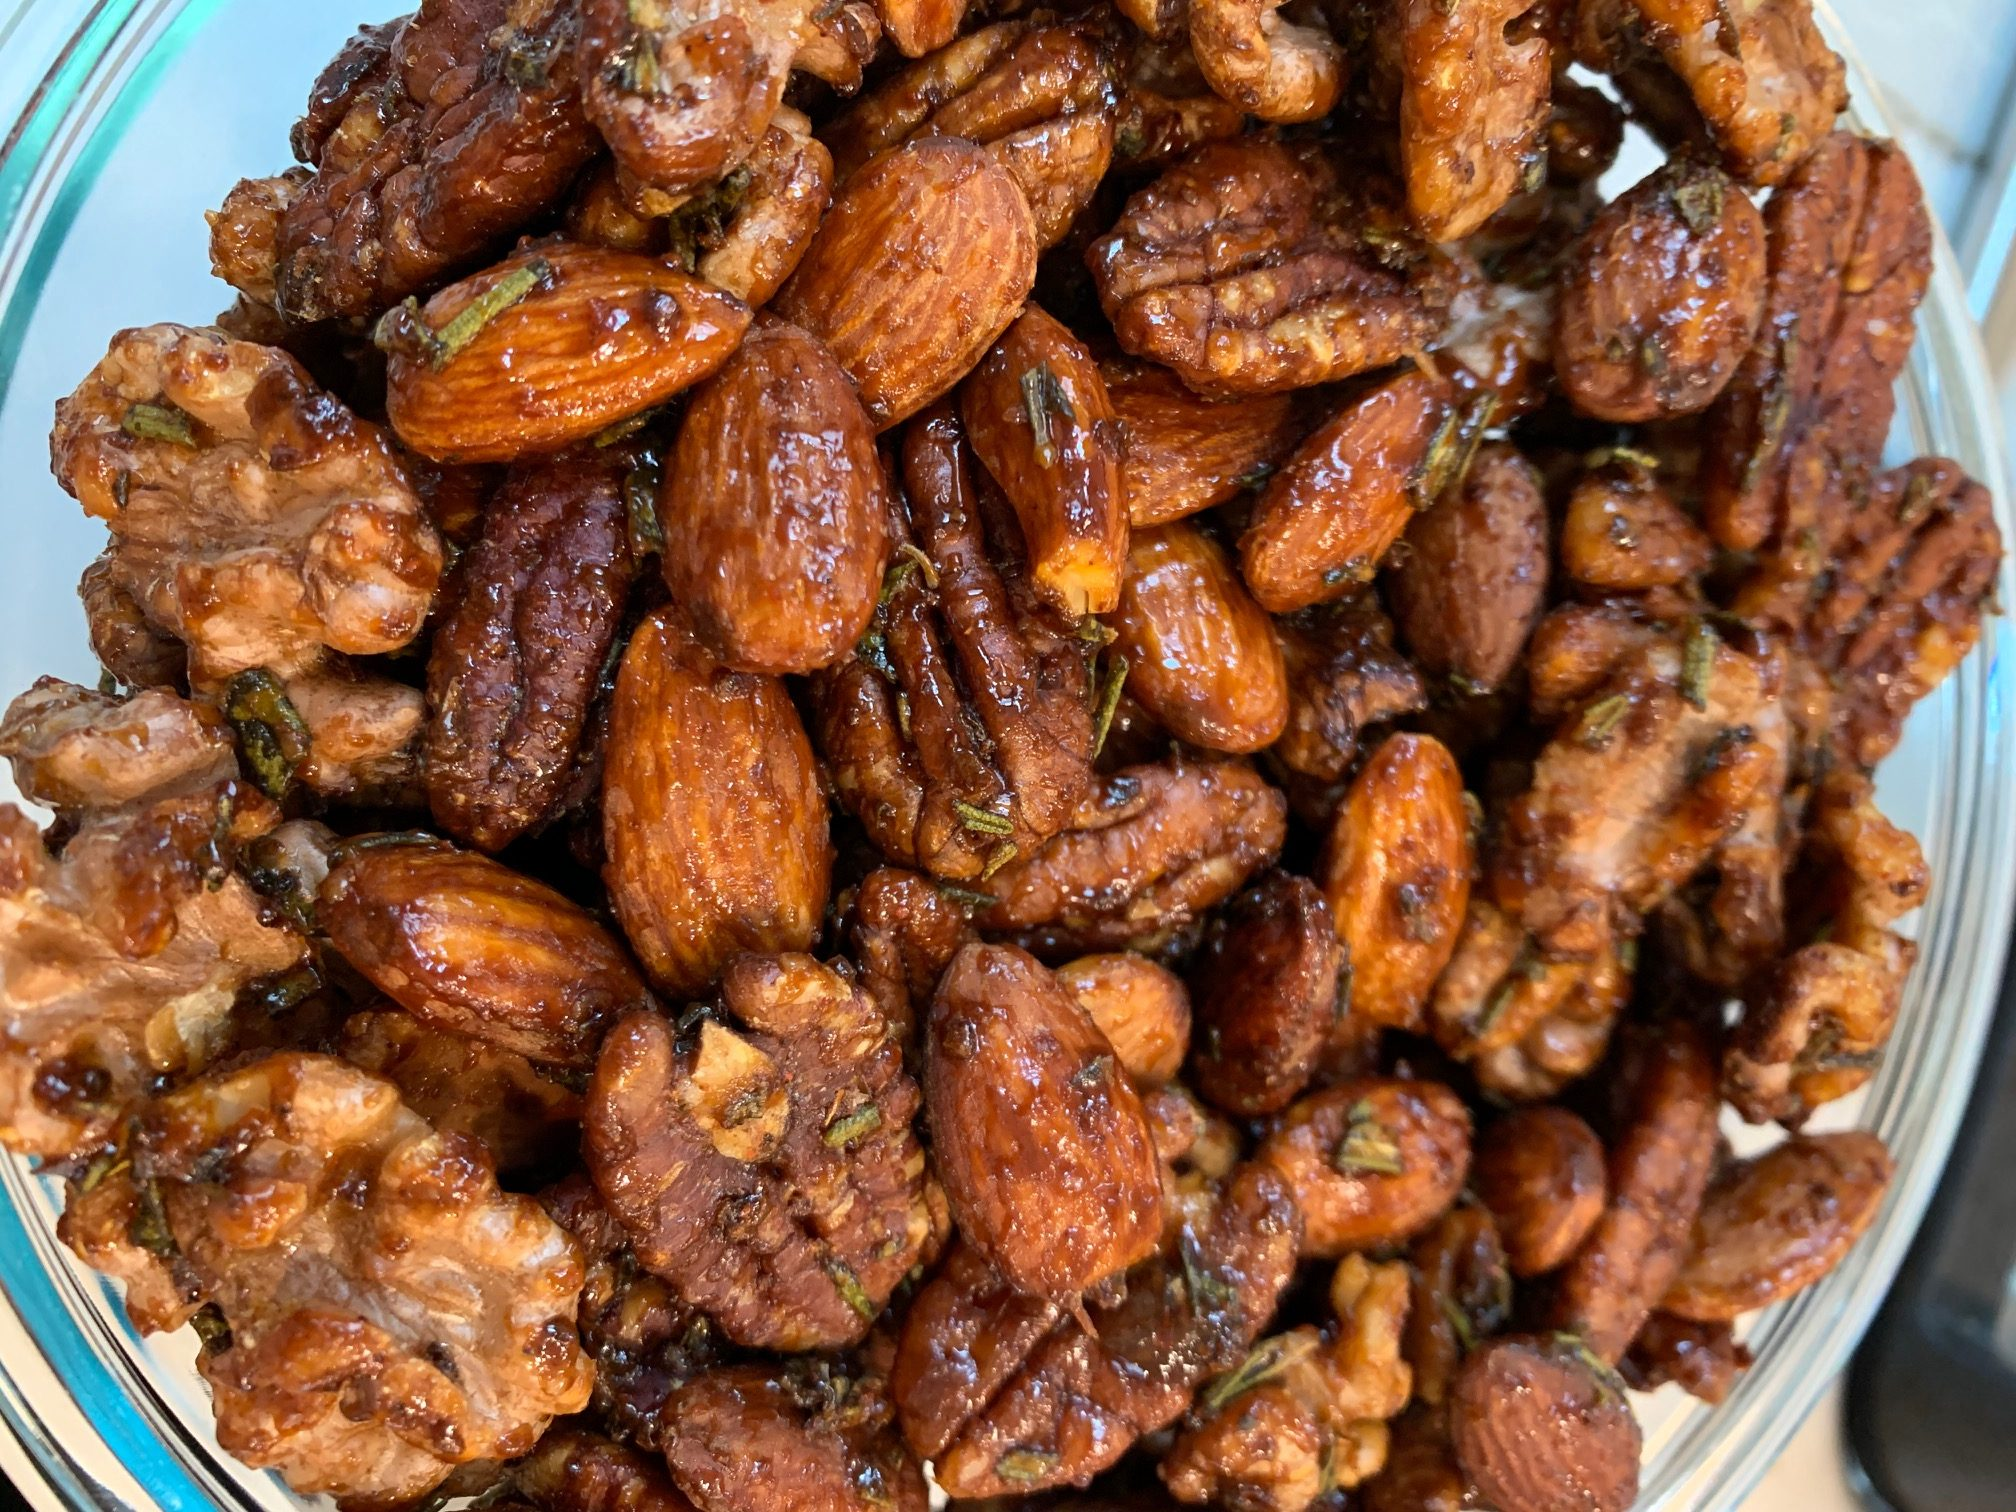 Maple-Rosemary Spiced Nuts